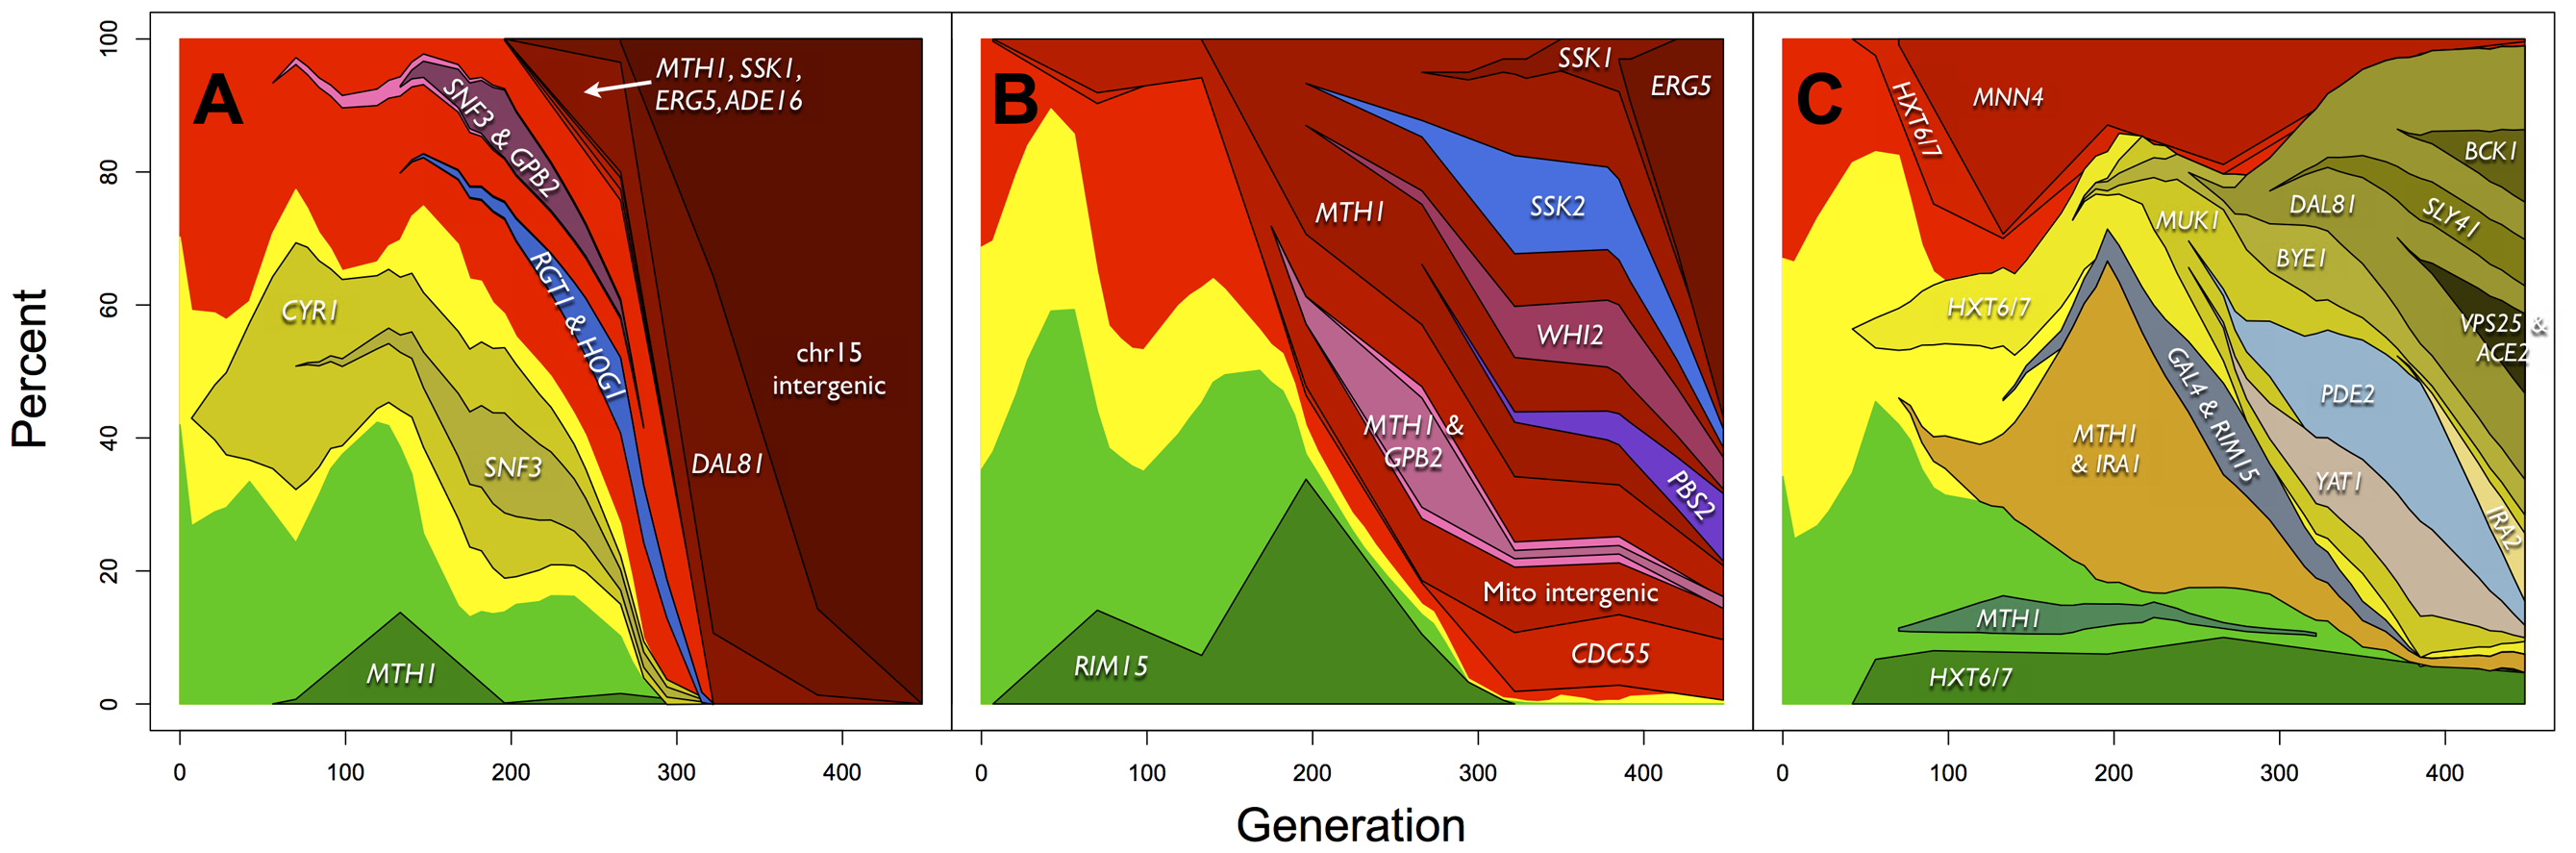 Dynamics and linkage of mutations above 10% allele frequency in (A) E1, (B) E2 and (C) E3.